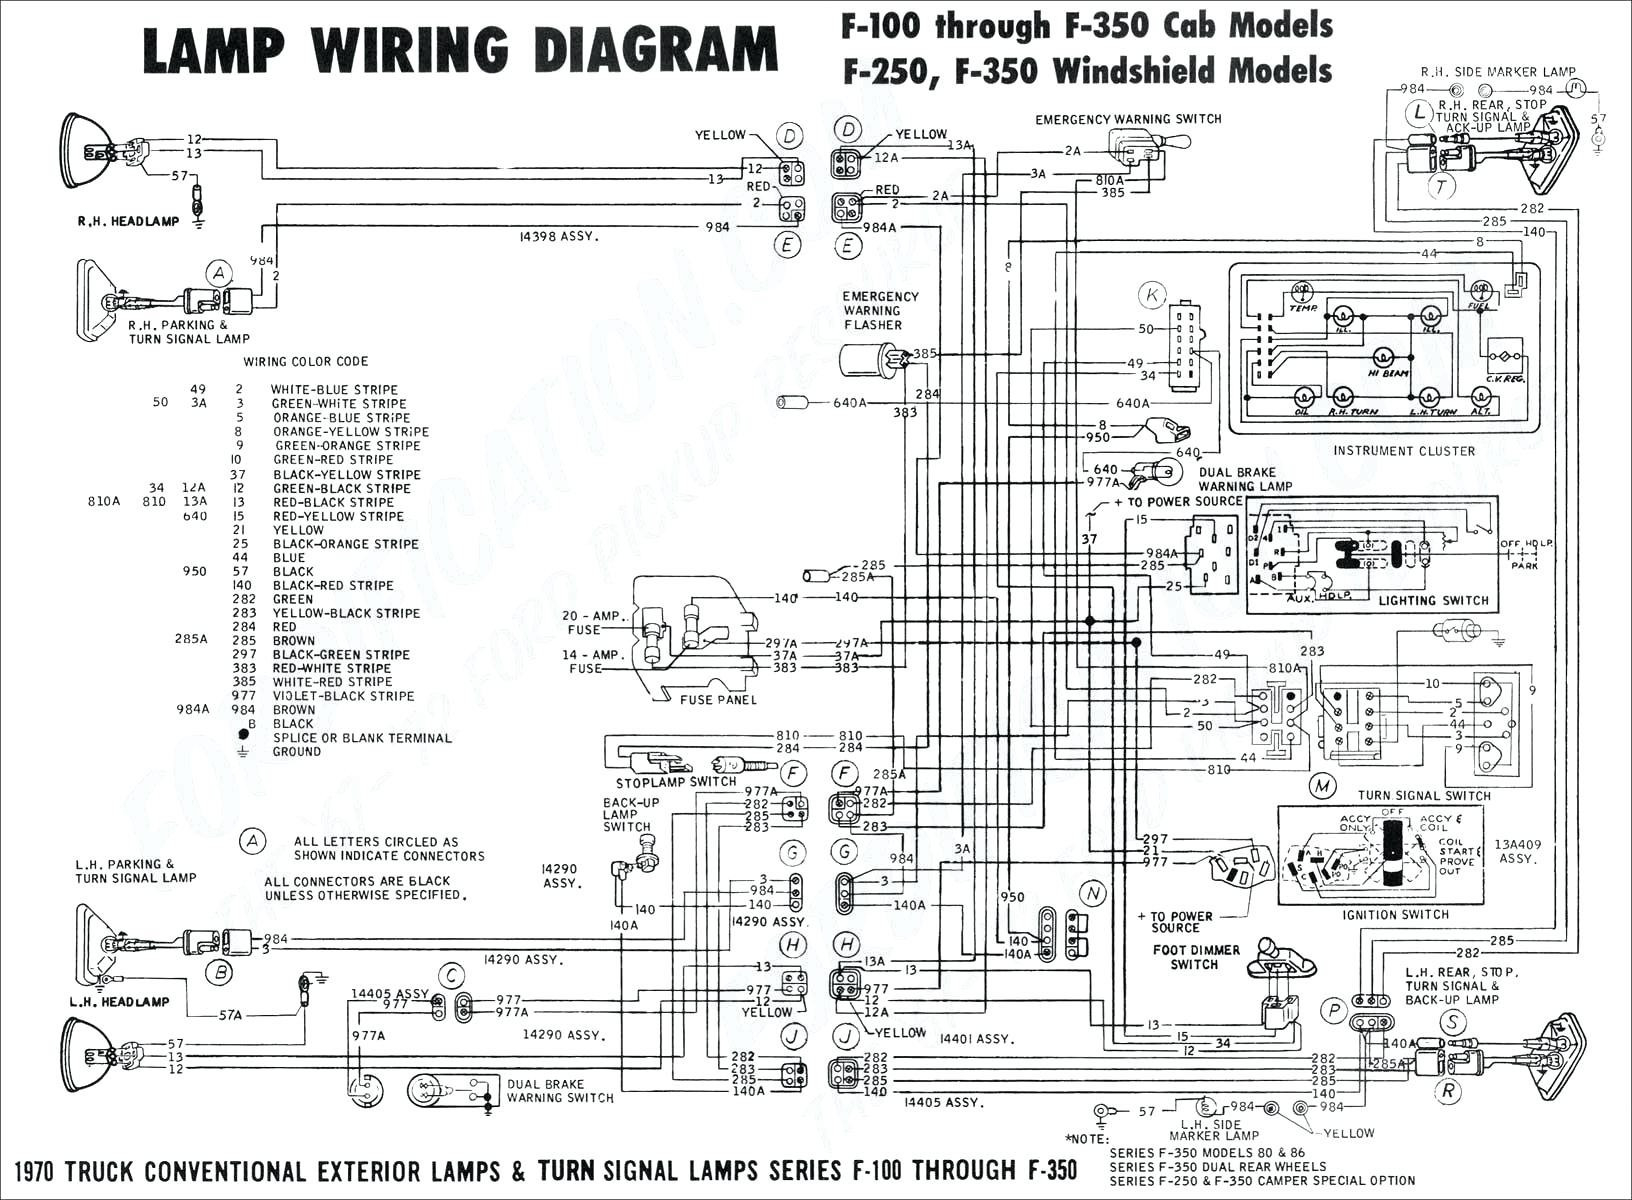 2010 Flex Wiring Diagram Opinions About Wiring Diagram \u2022 2016 Ford F-150  Wiring Diagram Ford F150 Fan Wiring Diagram